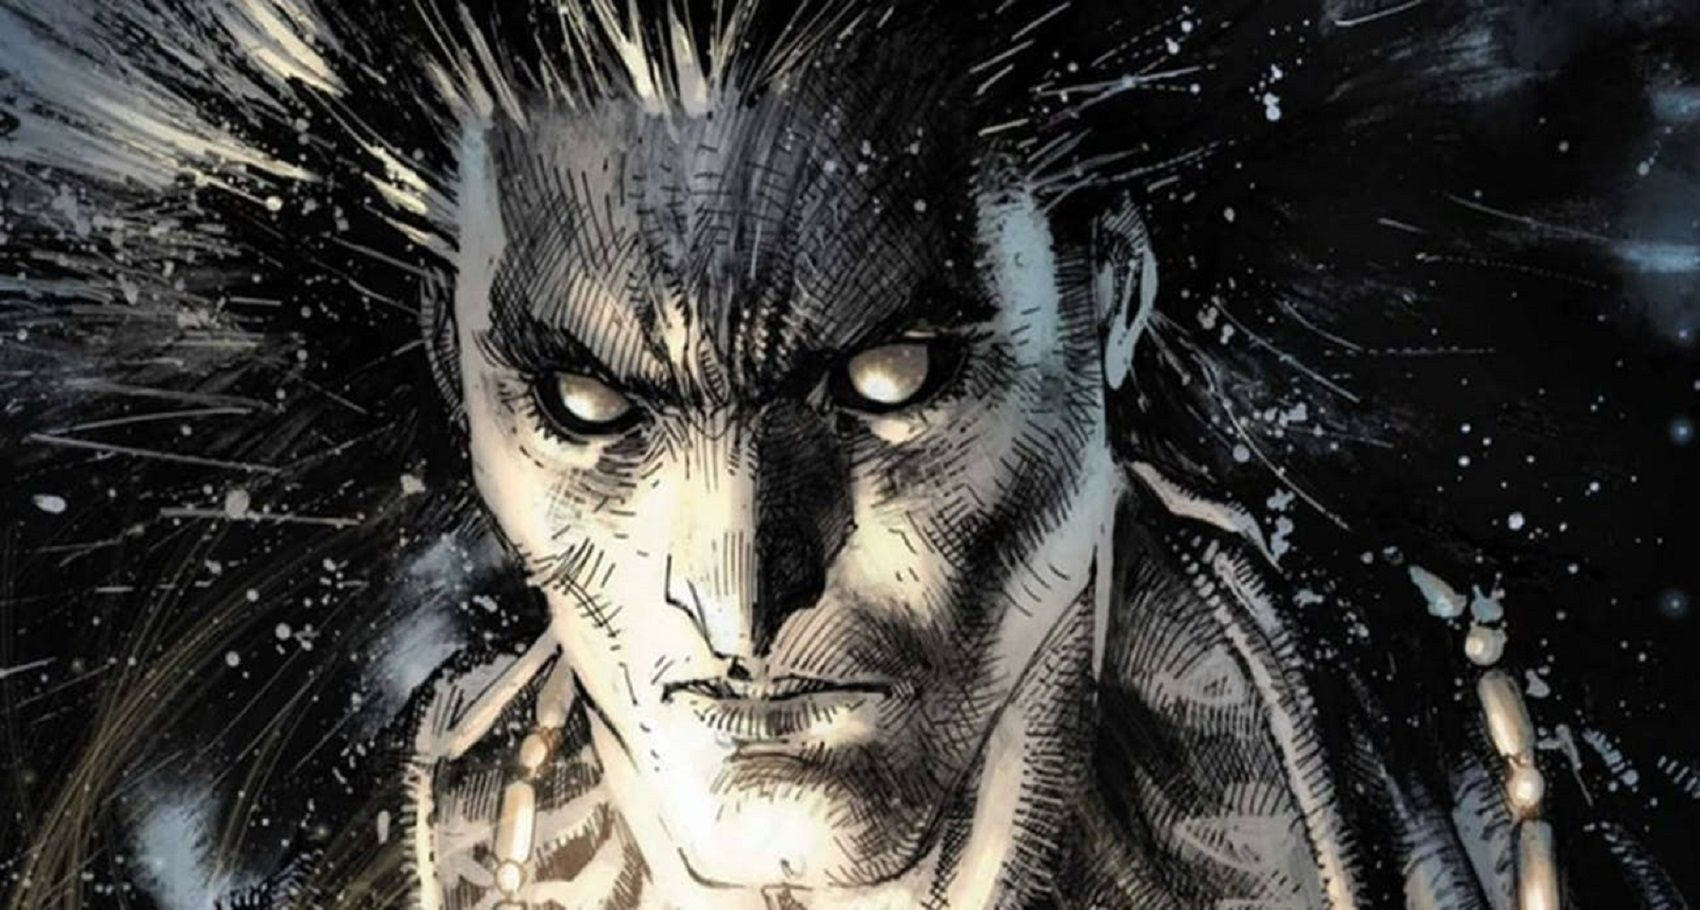 Neil Gaiman: 10 Things You Didn't Know About The Sandman | CBR